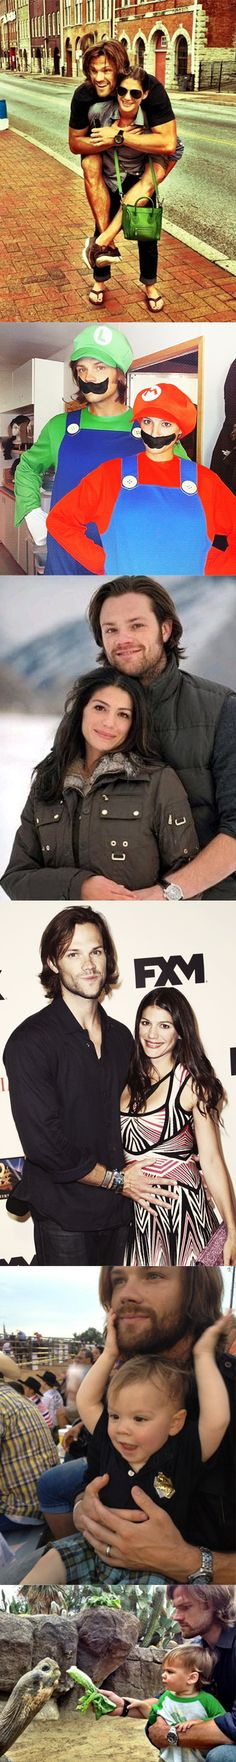 This is Jared Padalecki, his gorgeous wife Genevieve, and their son Thomas. Cutest family ever!